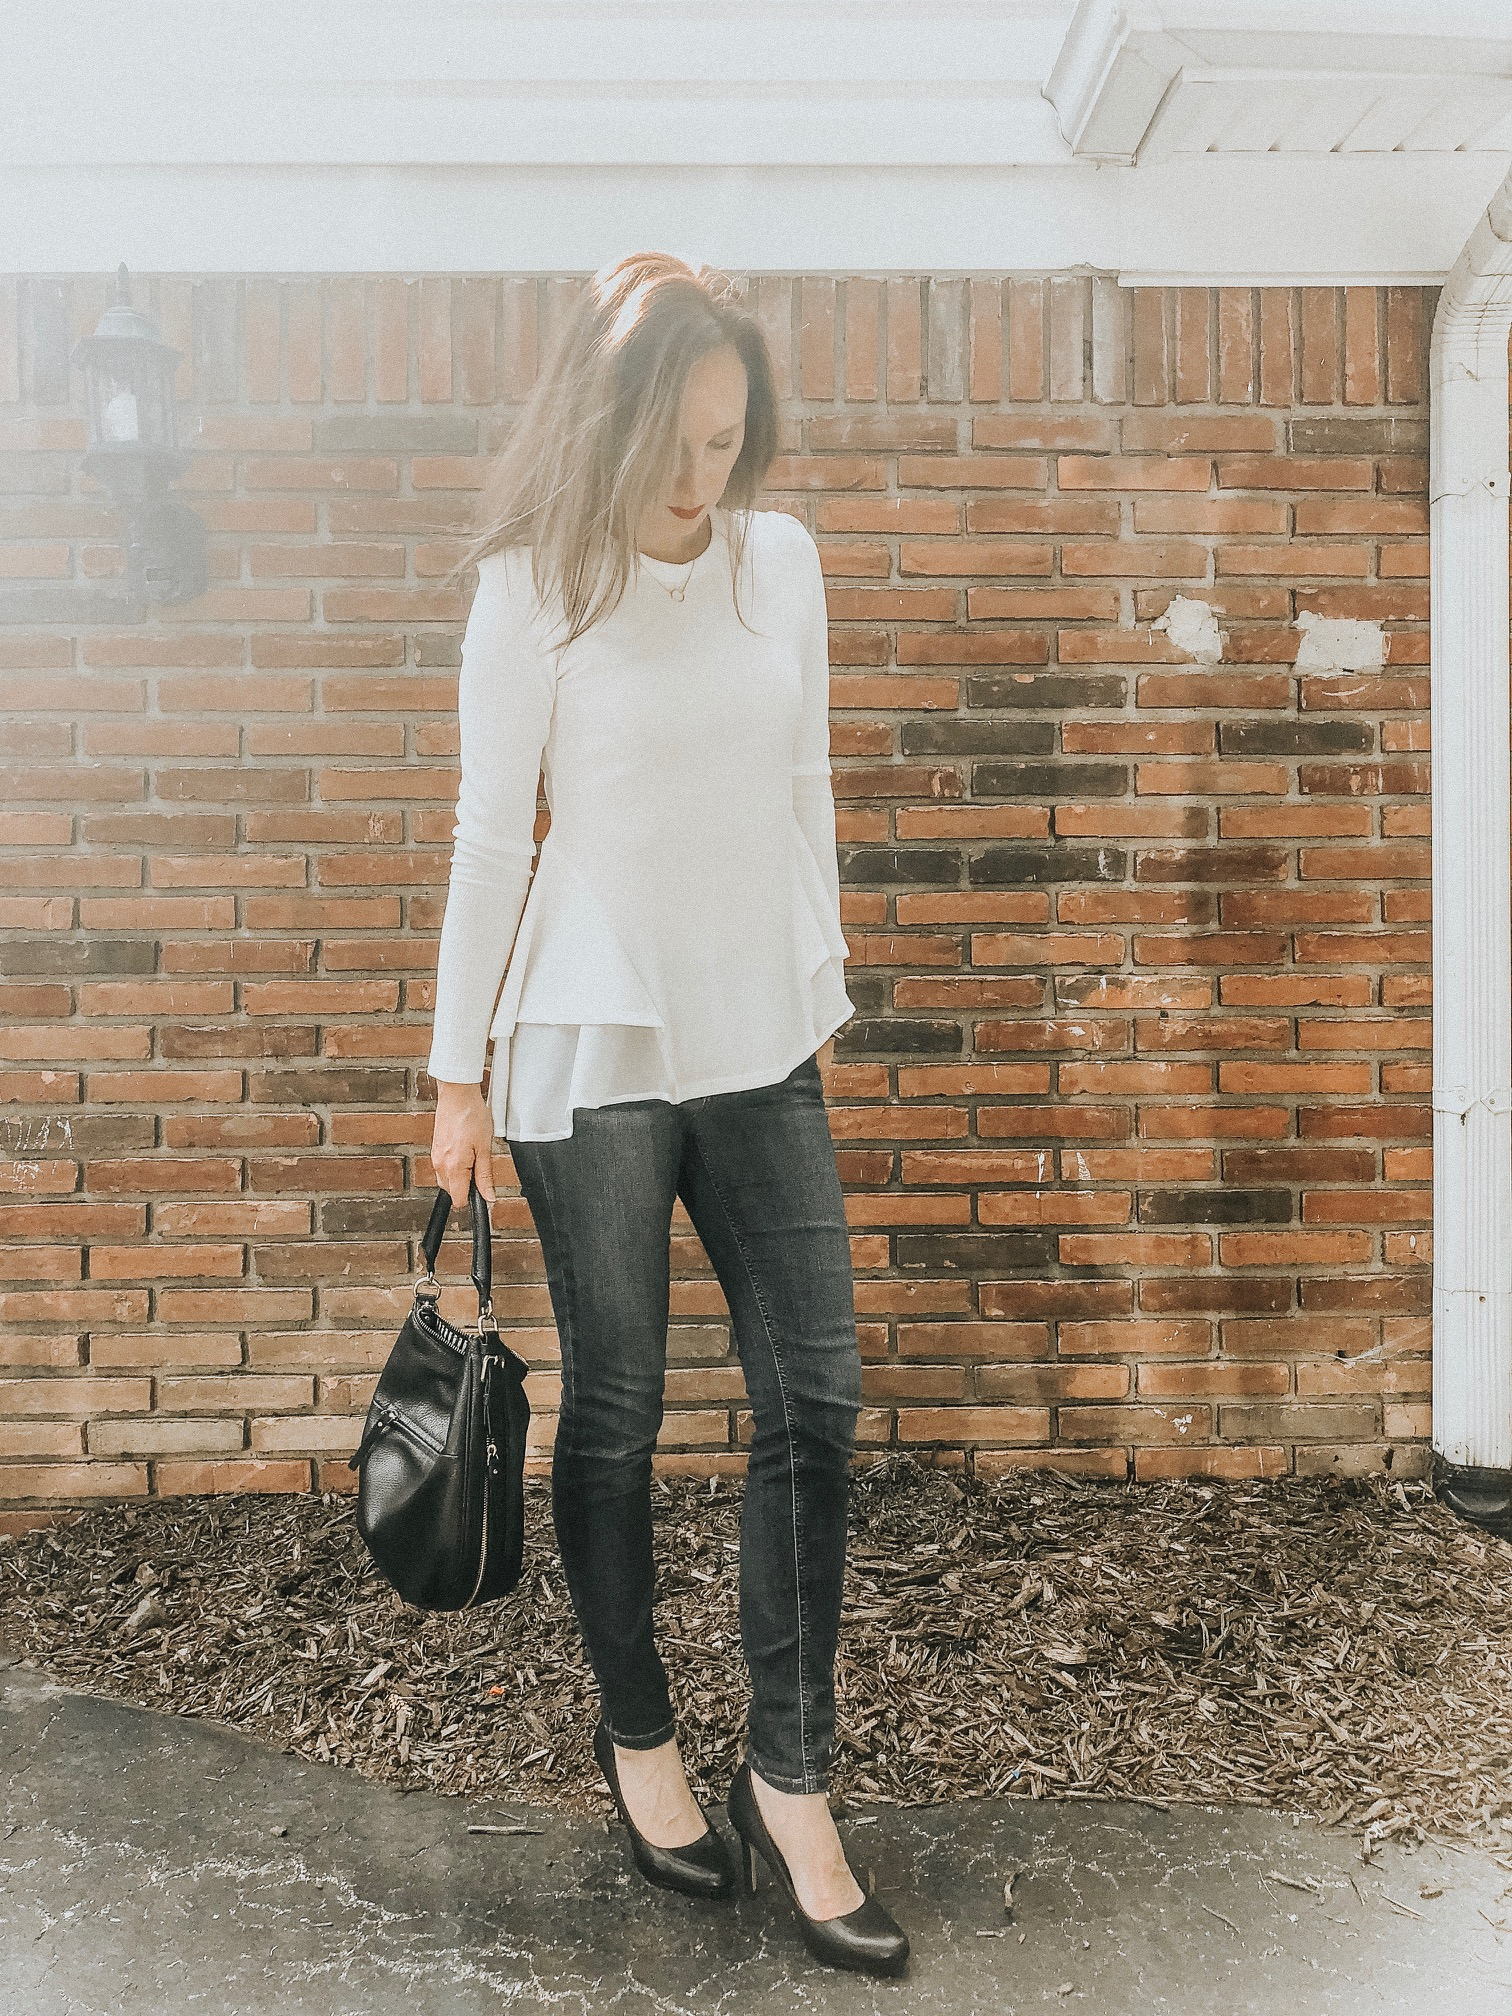 Fall Instagram Favorites | Daily Splendor Life and Style Blog | White top, jeans and pumps #momstyle #everydayfashion #fallstyle #workwear #officewear